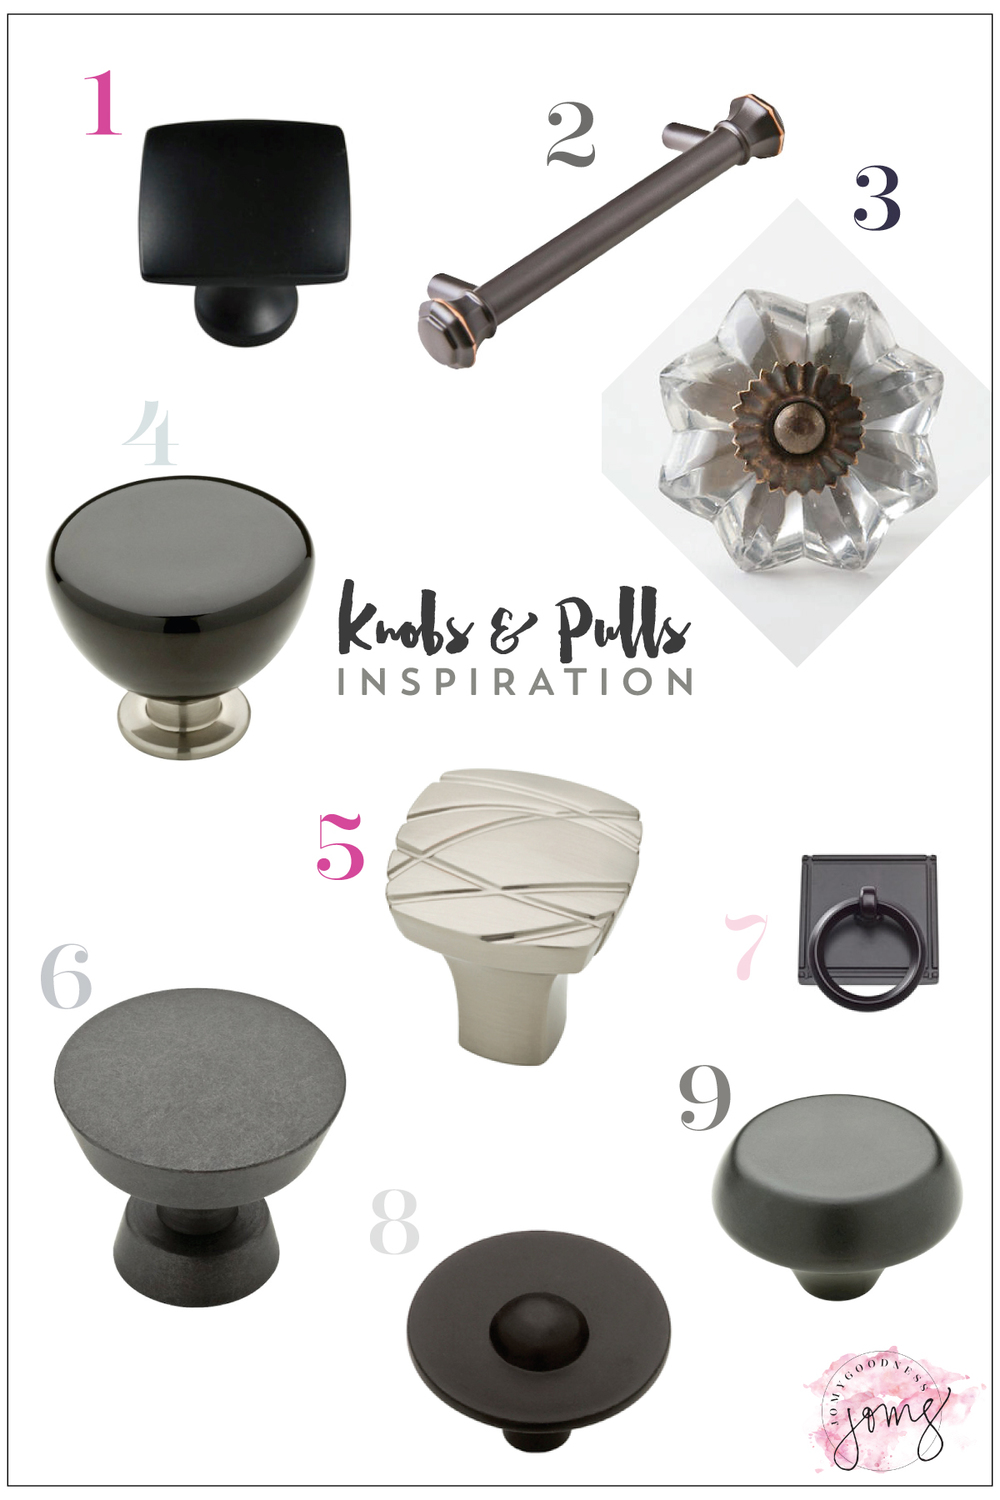 Knobs & Pulls Inspiration from Jomygoodness